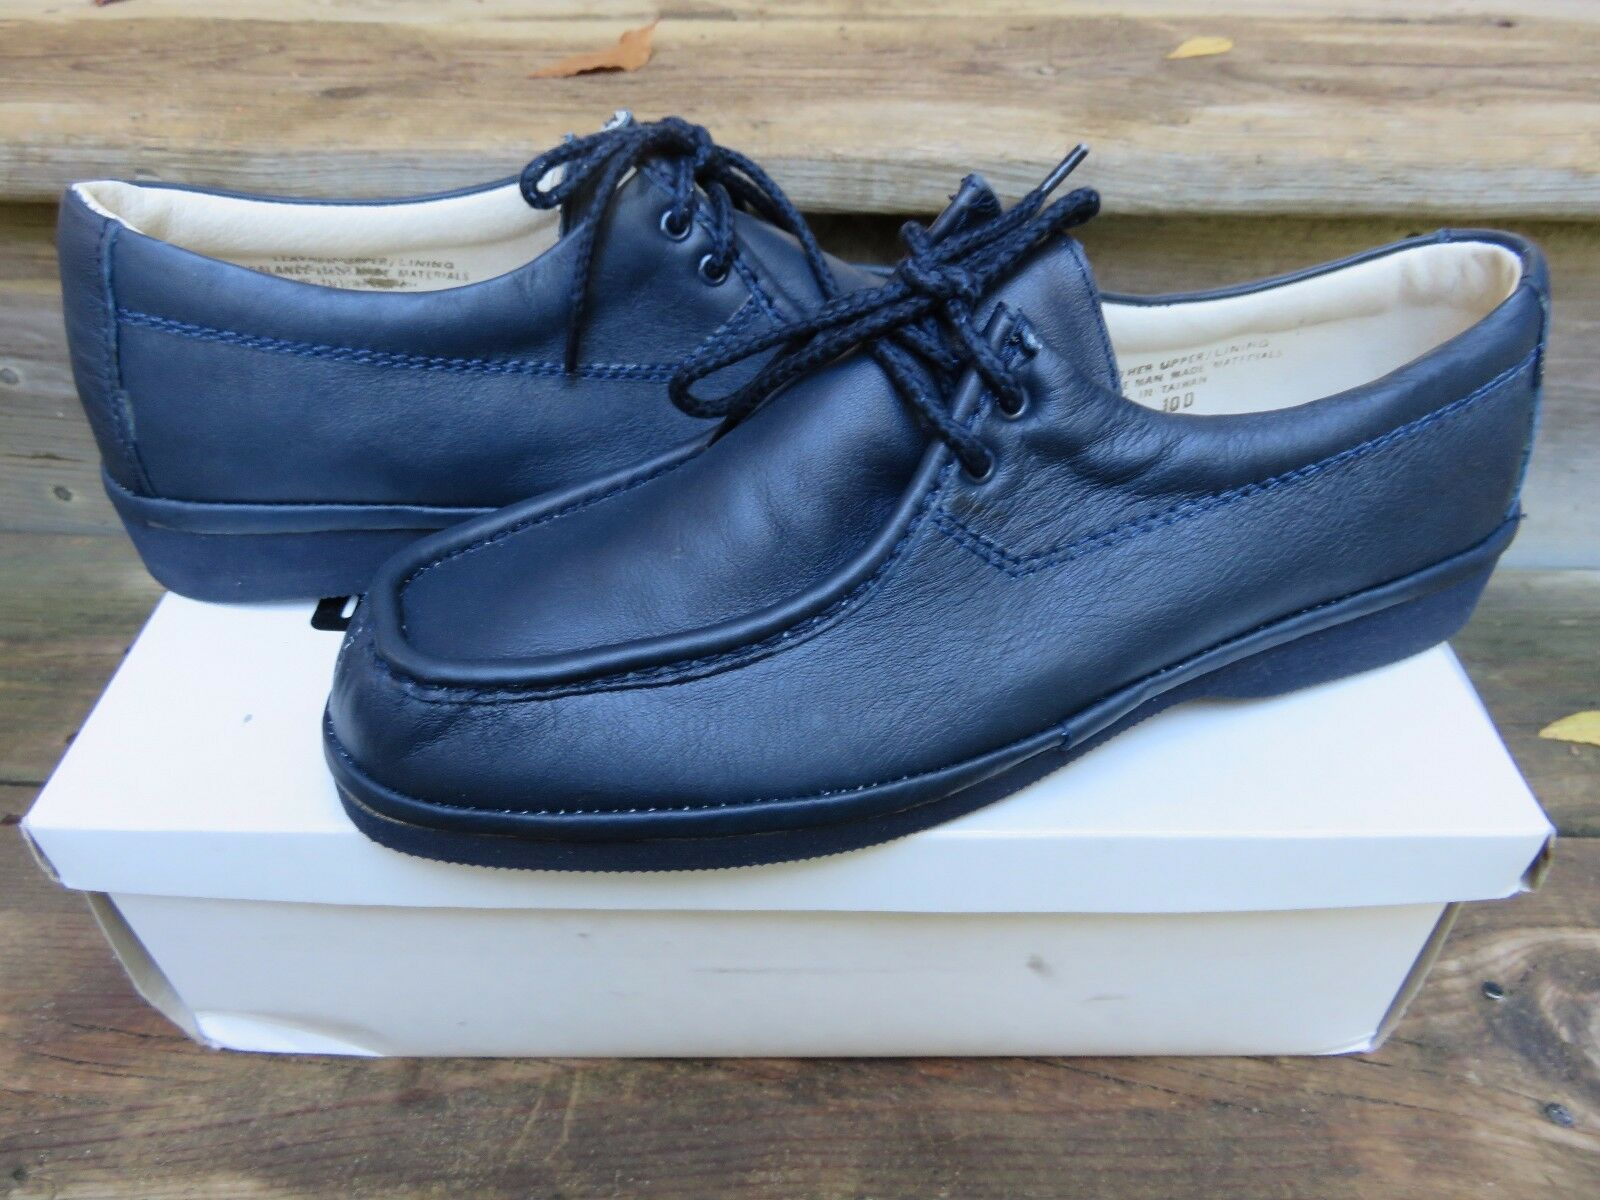 NEW Stuart McGuire bluee Moccasin Loafer Casual shoes Size 4100